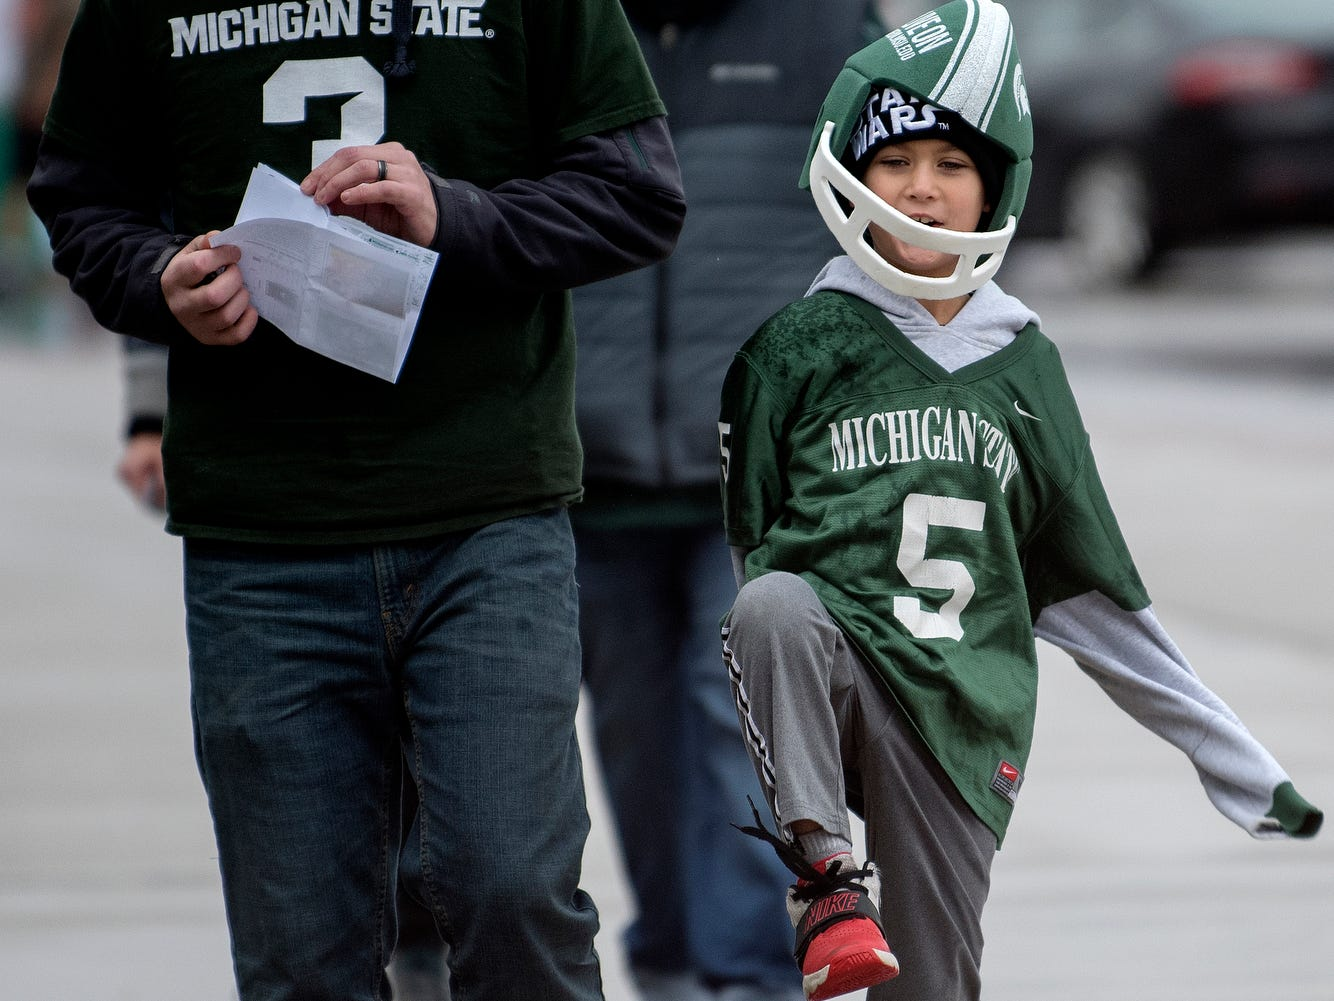 Spartans fan Greyson Rountree, 7, right, and his father Josh make their way to the entry game before Michigan State's game against Rutgers on Saturday, Nov. 24, 2018, outside Spartan Stadium in East Lansing.